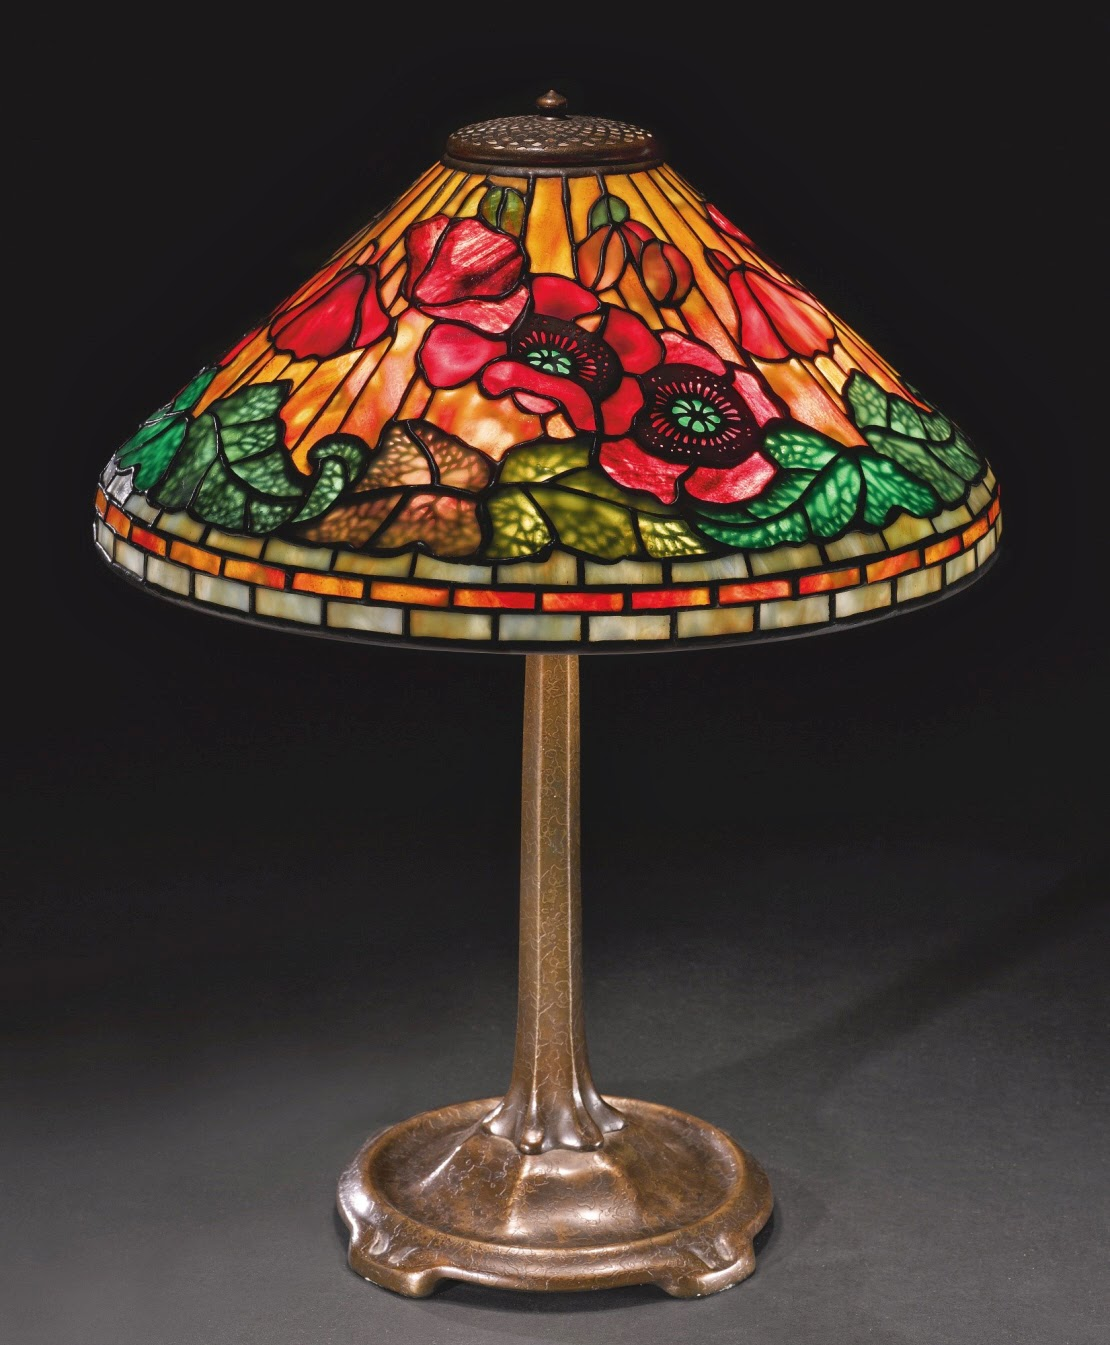 Authentic Tiffany Lamp Expert: March 2014